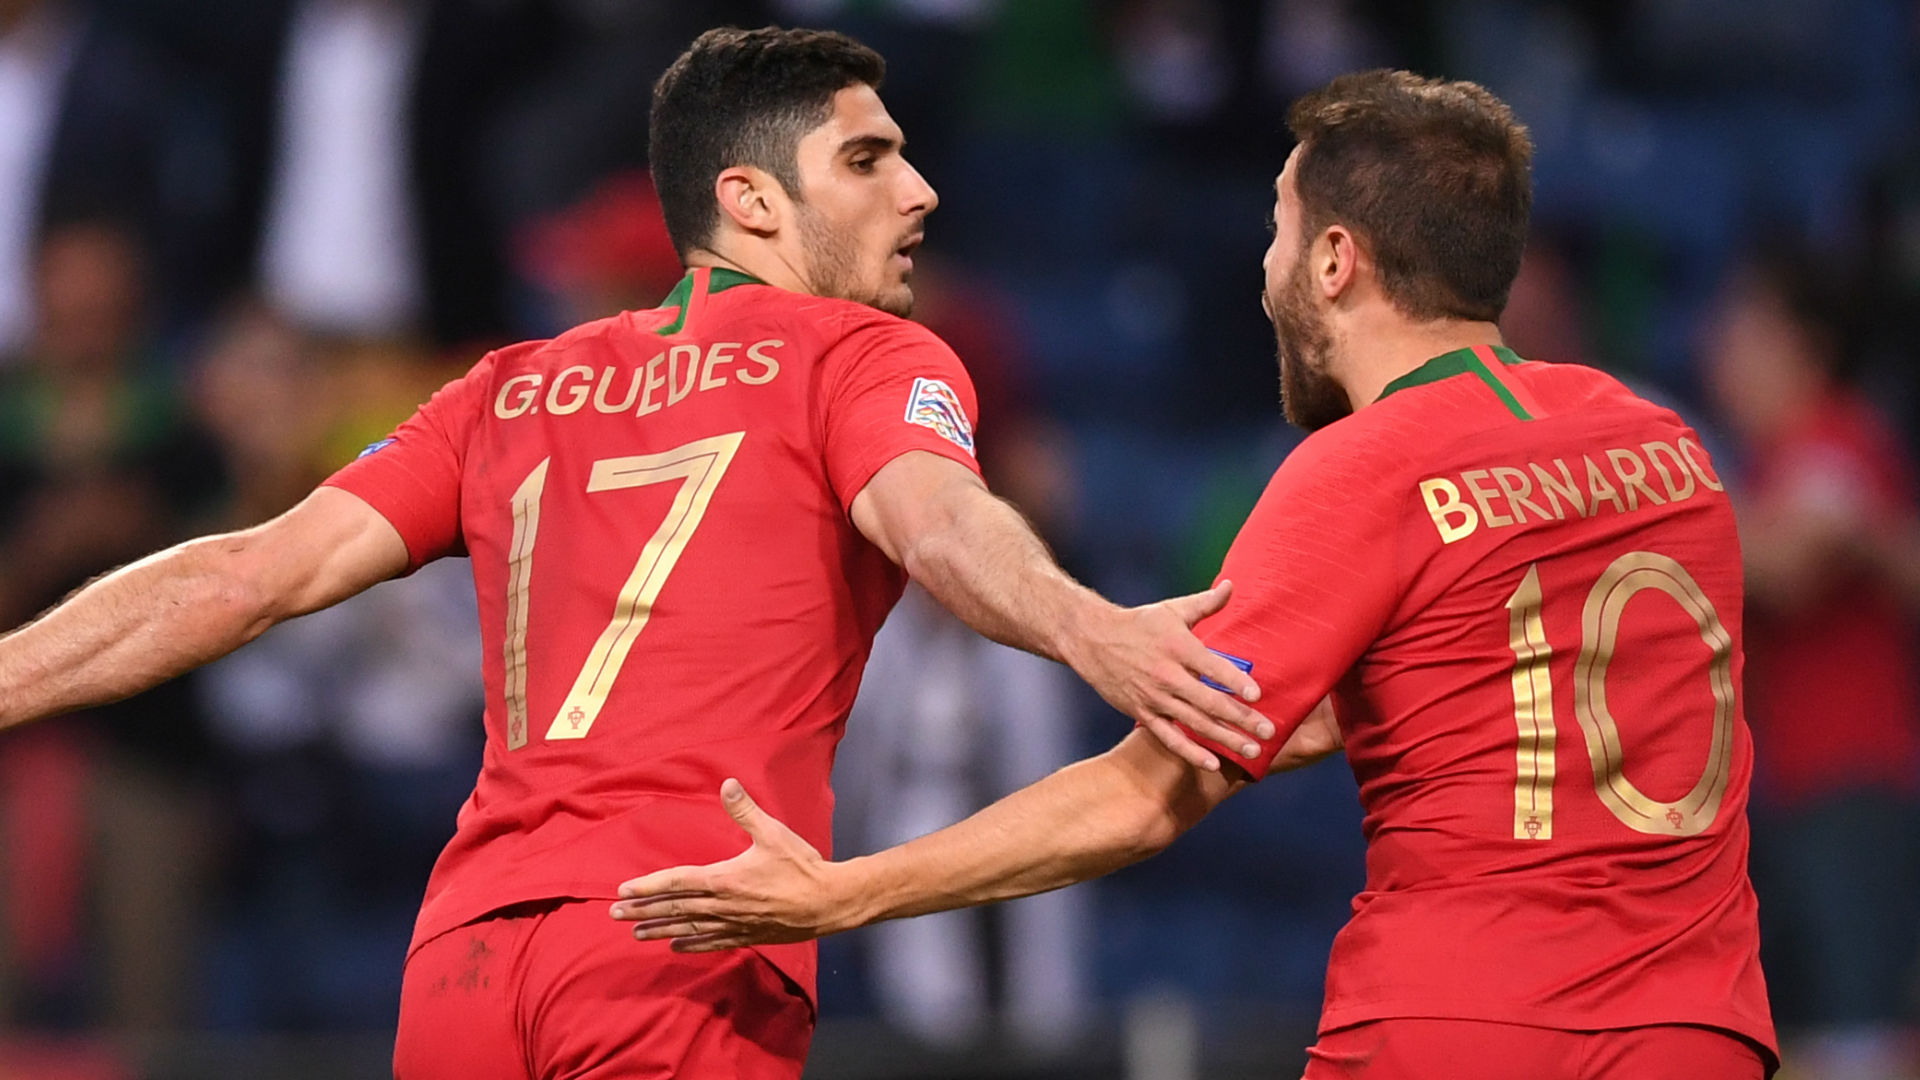 Guedes Portugal Nations league